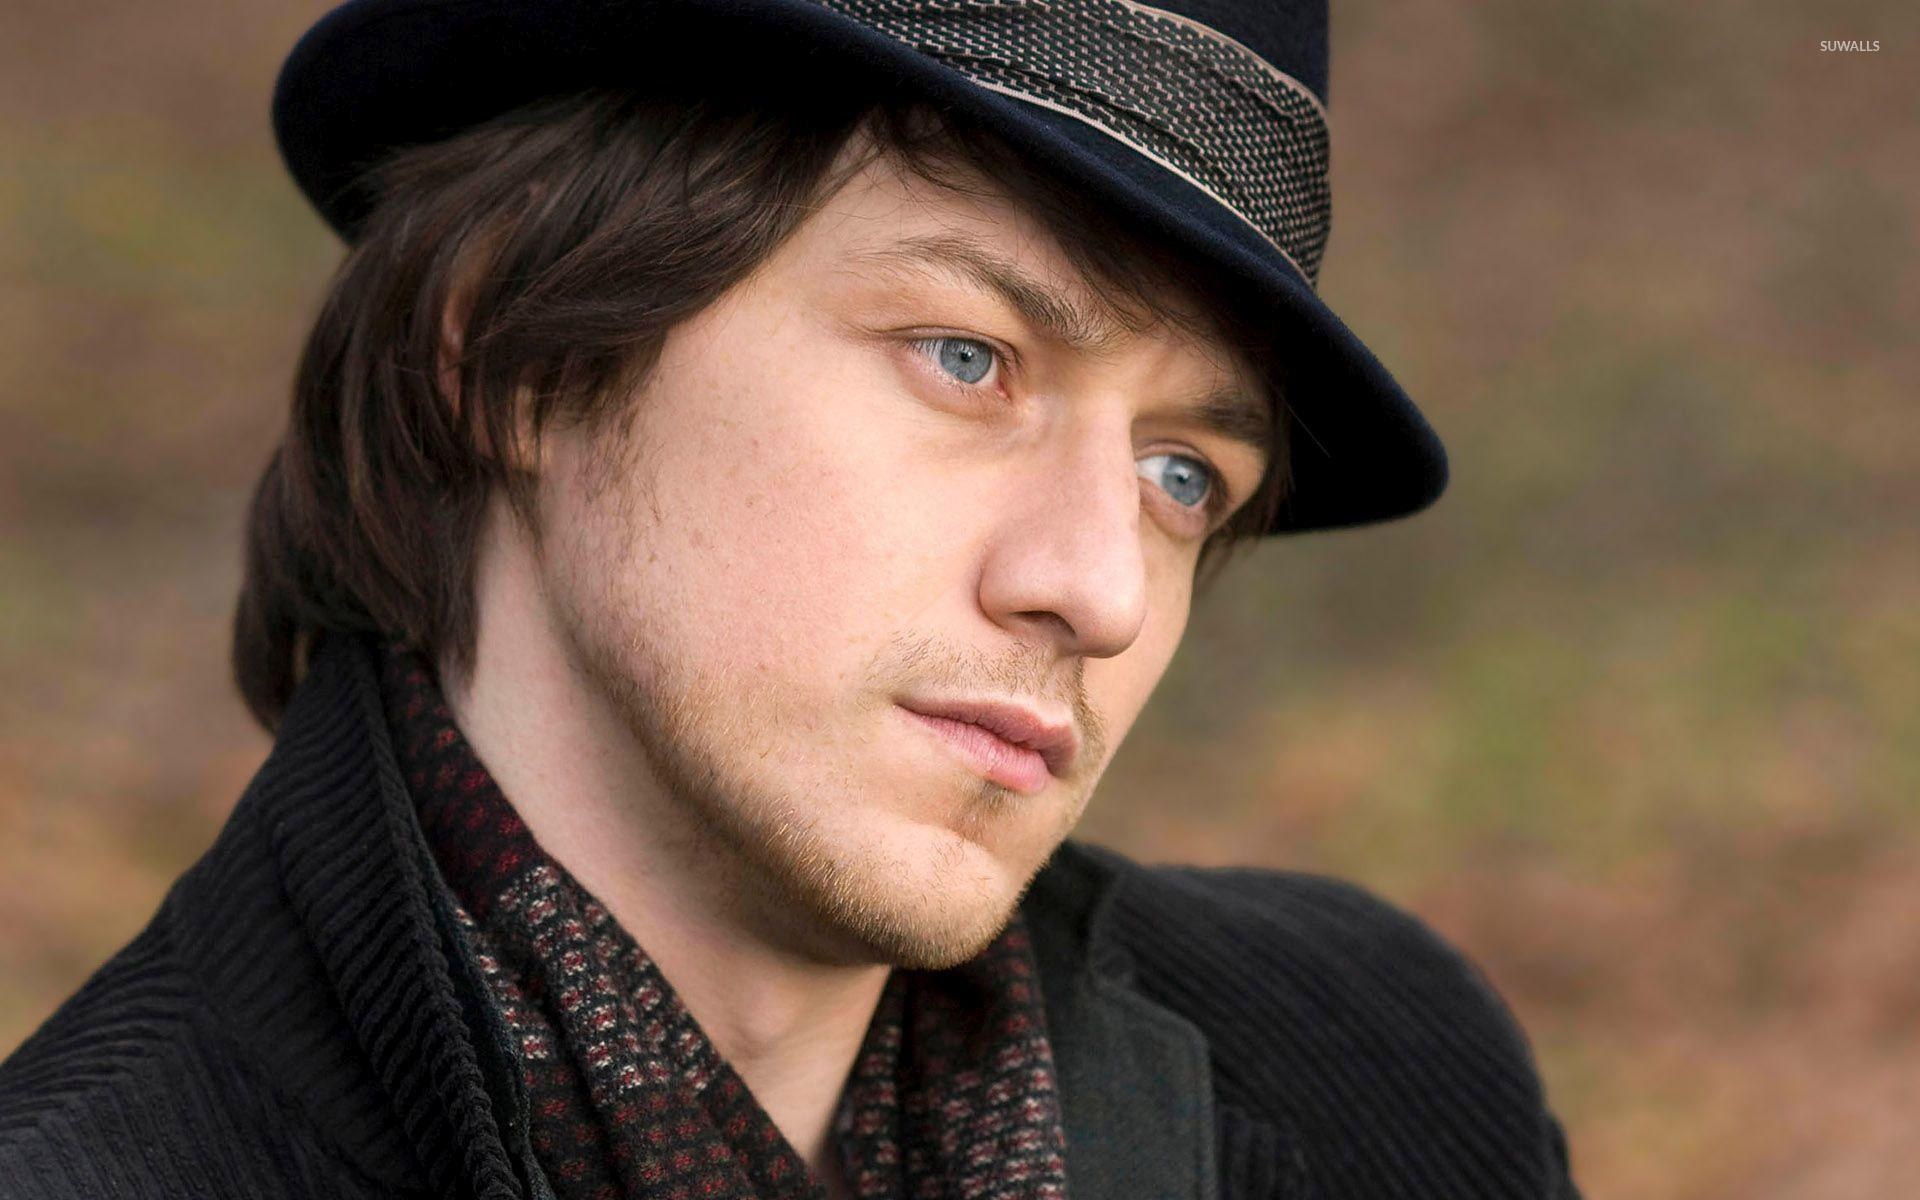 James McAvoy with a black hat wallpapers